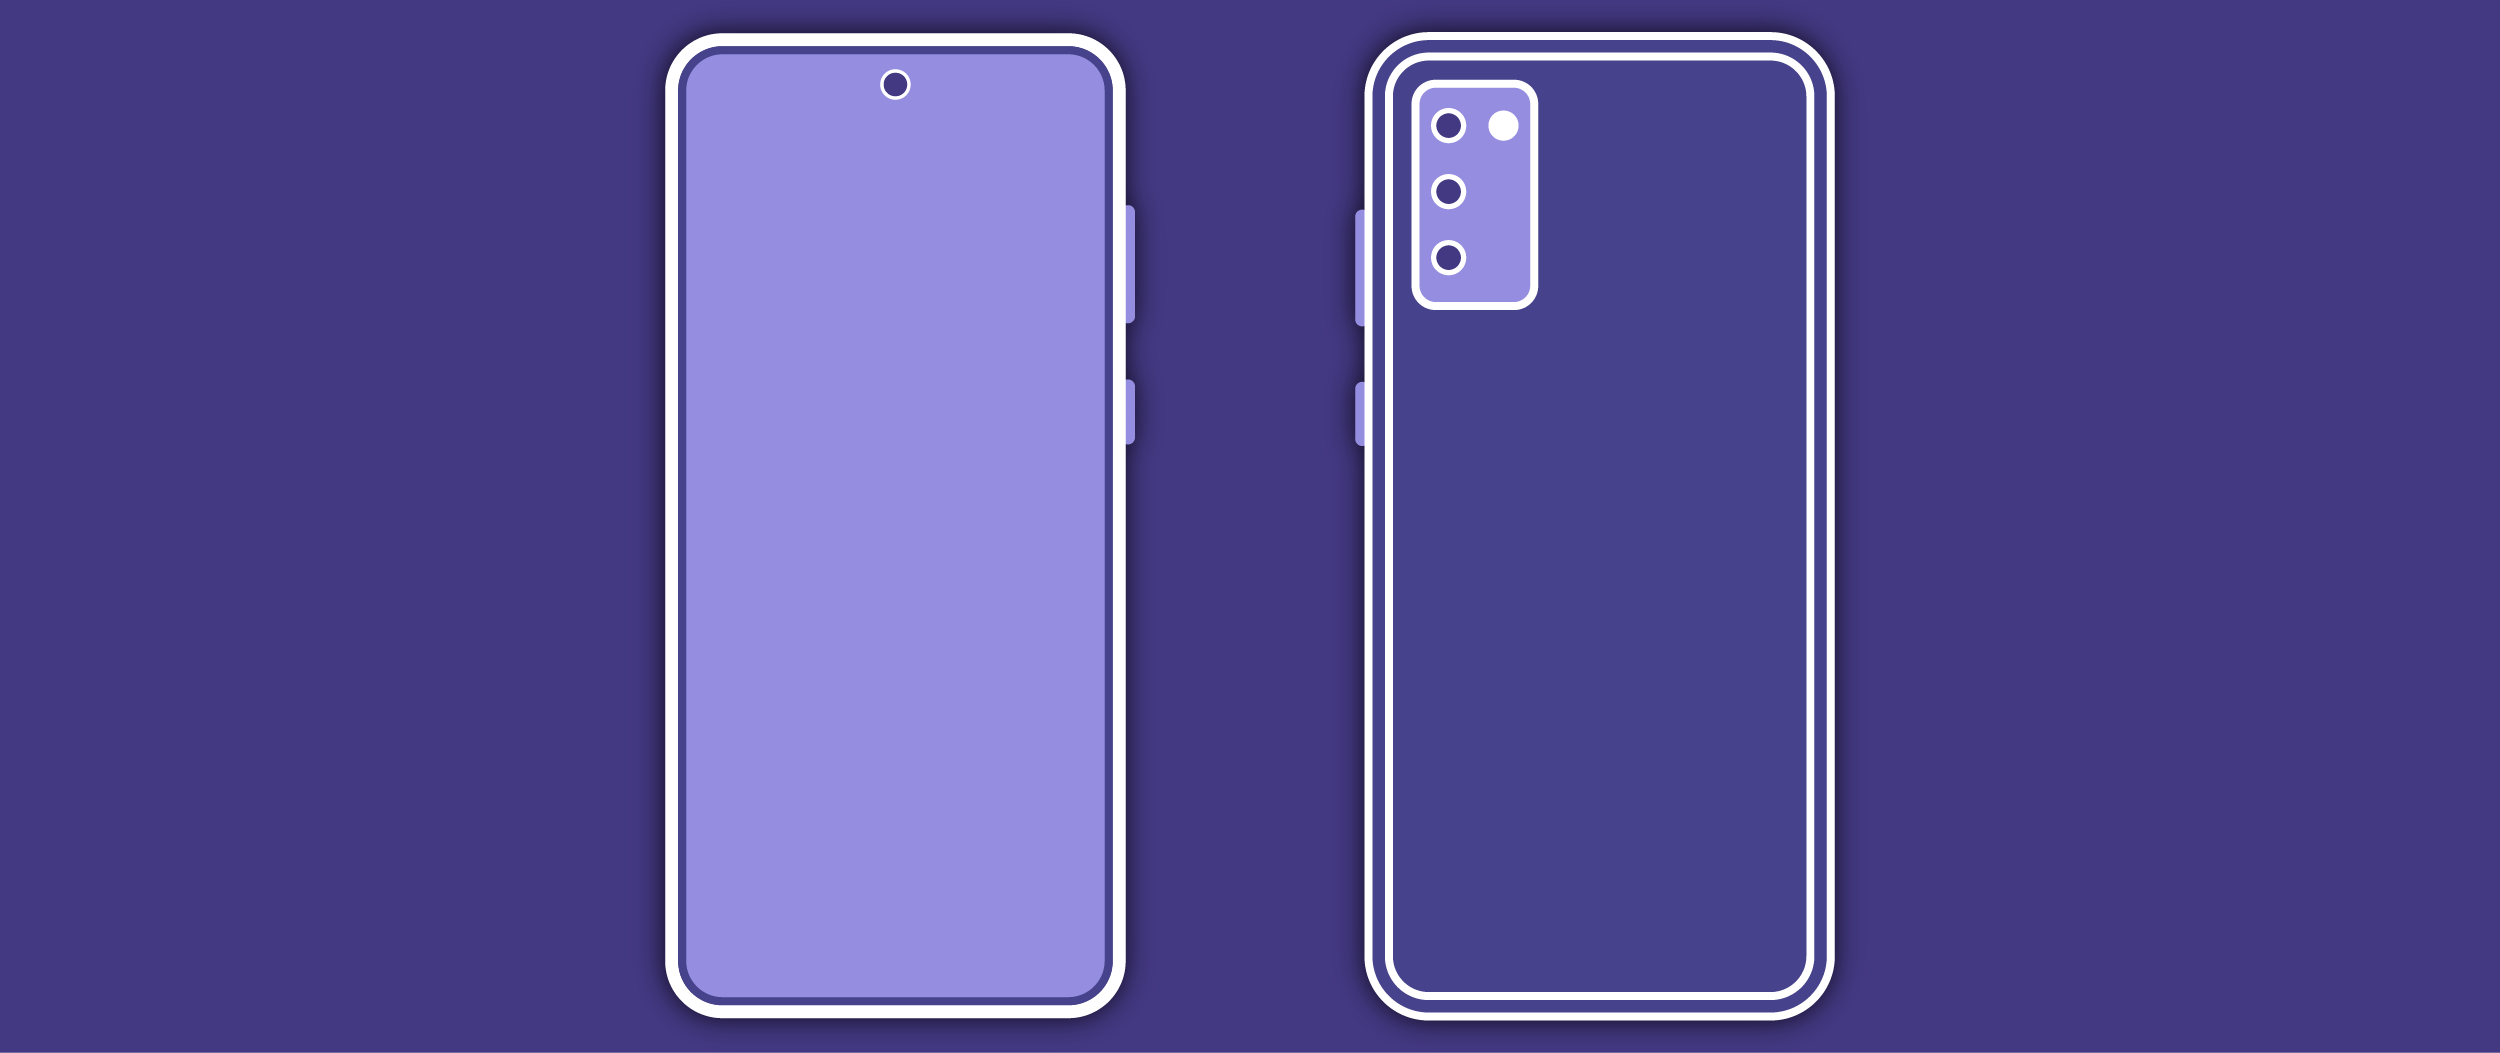 Banner image of a Galaxy S20 on a purple background